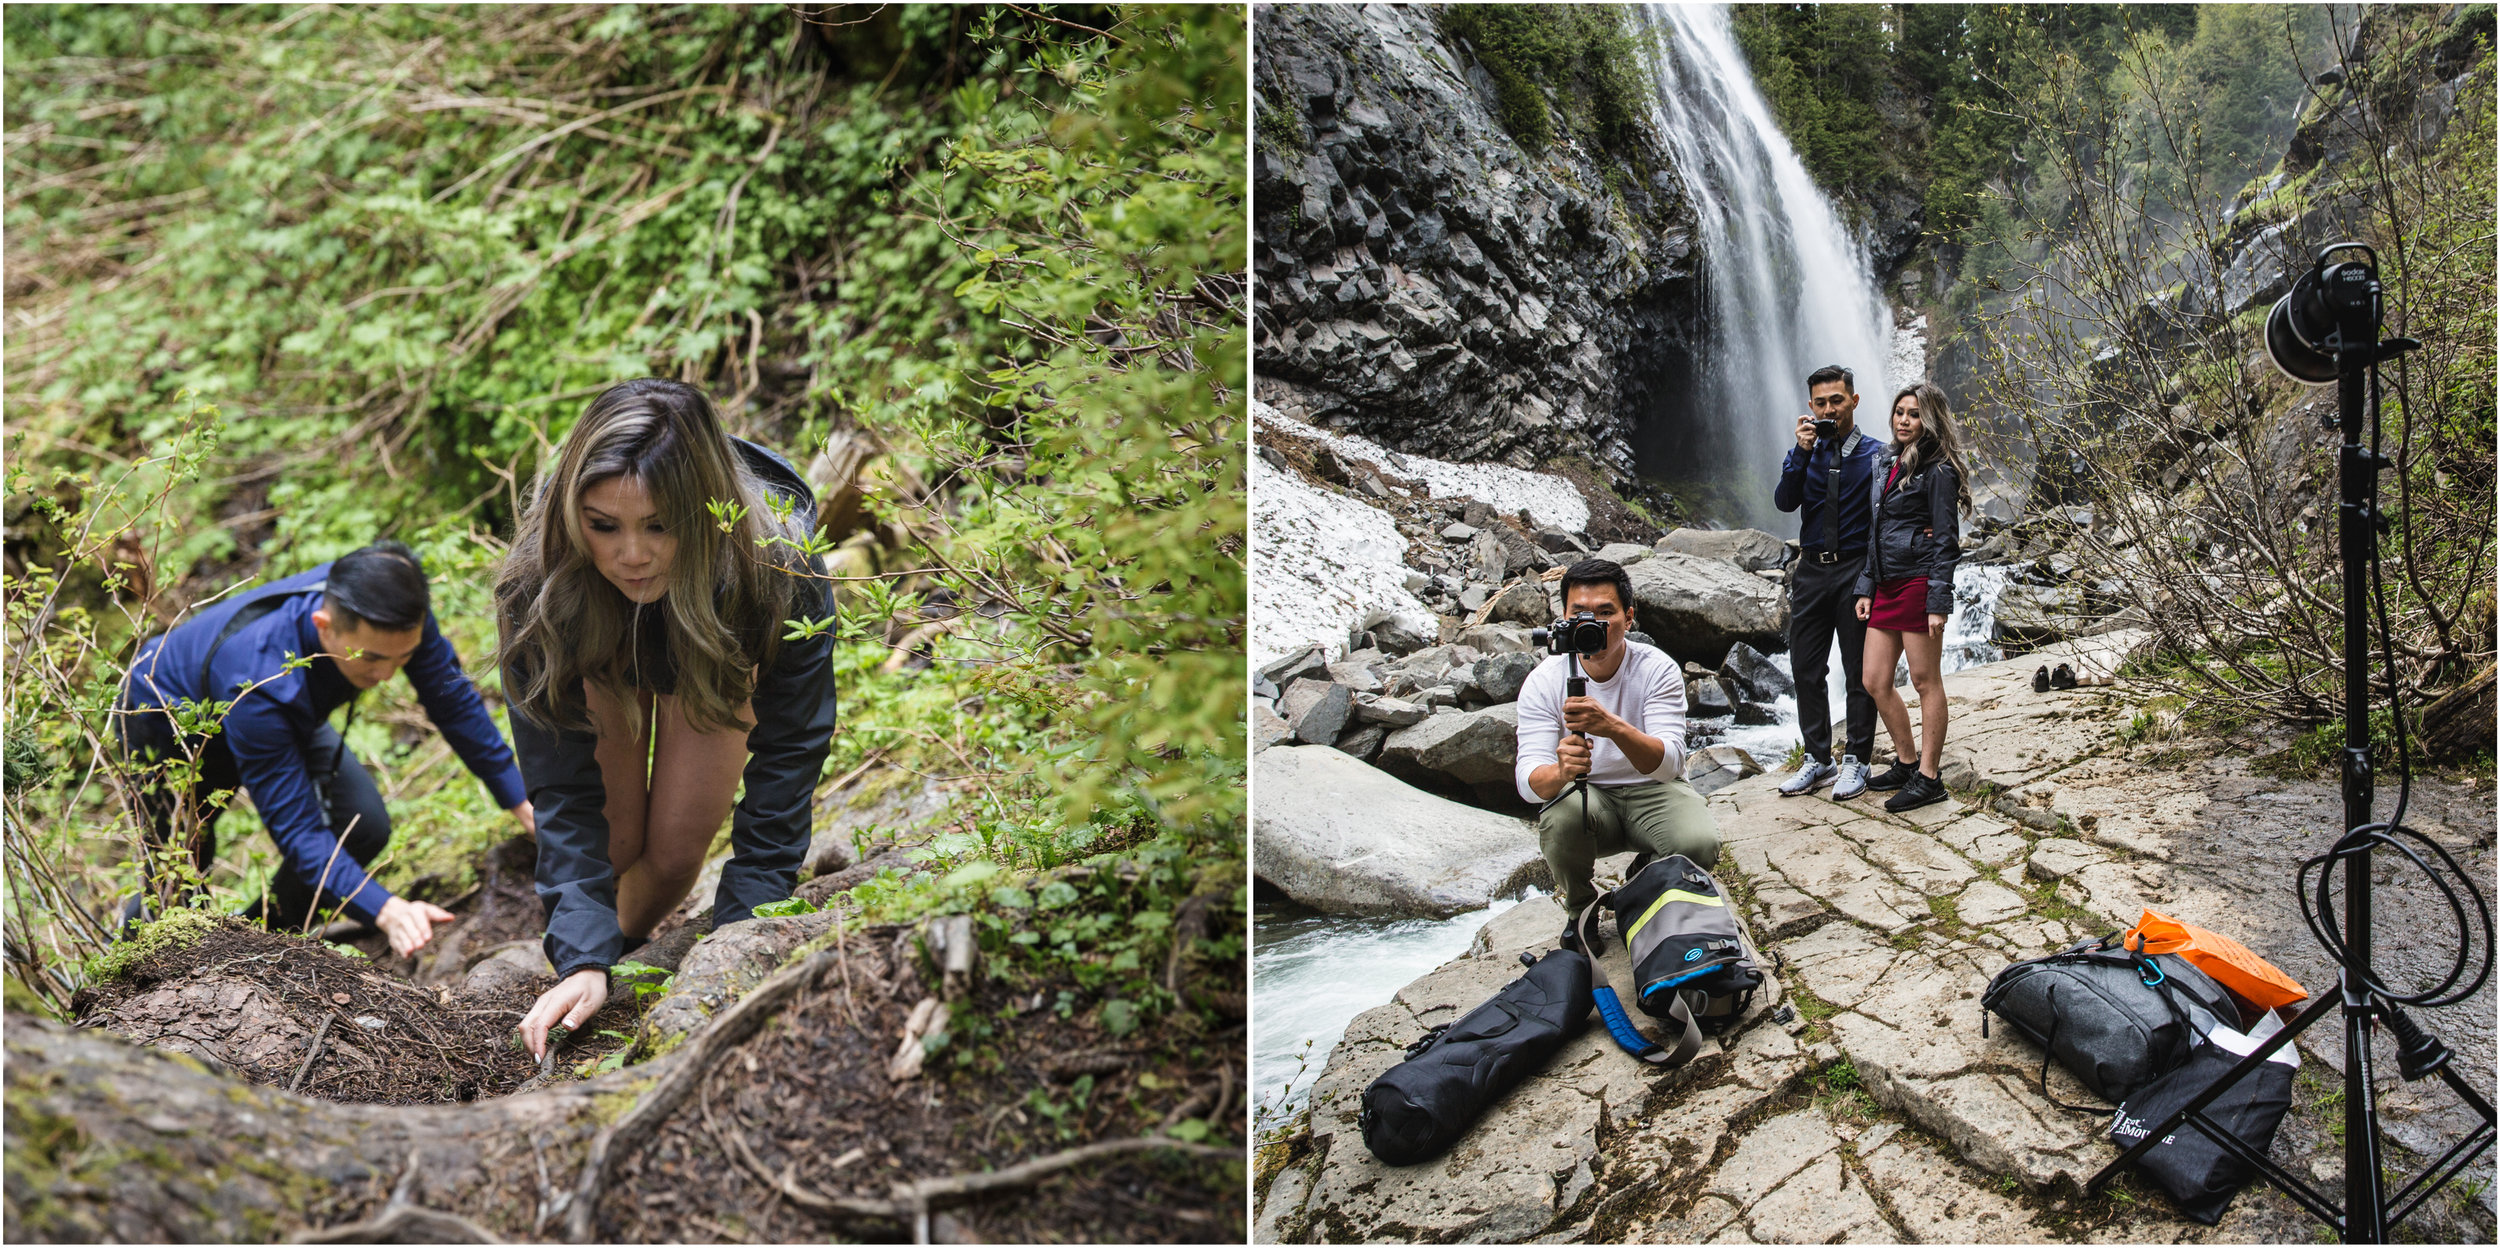 There was no clear path to Narada Falls, so we took it upon ourselves to create a path. Cindy and Jimmy were troopers climbing down slippery mud and rocks in their dress clothes.